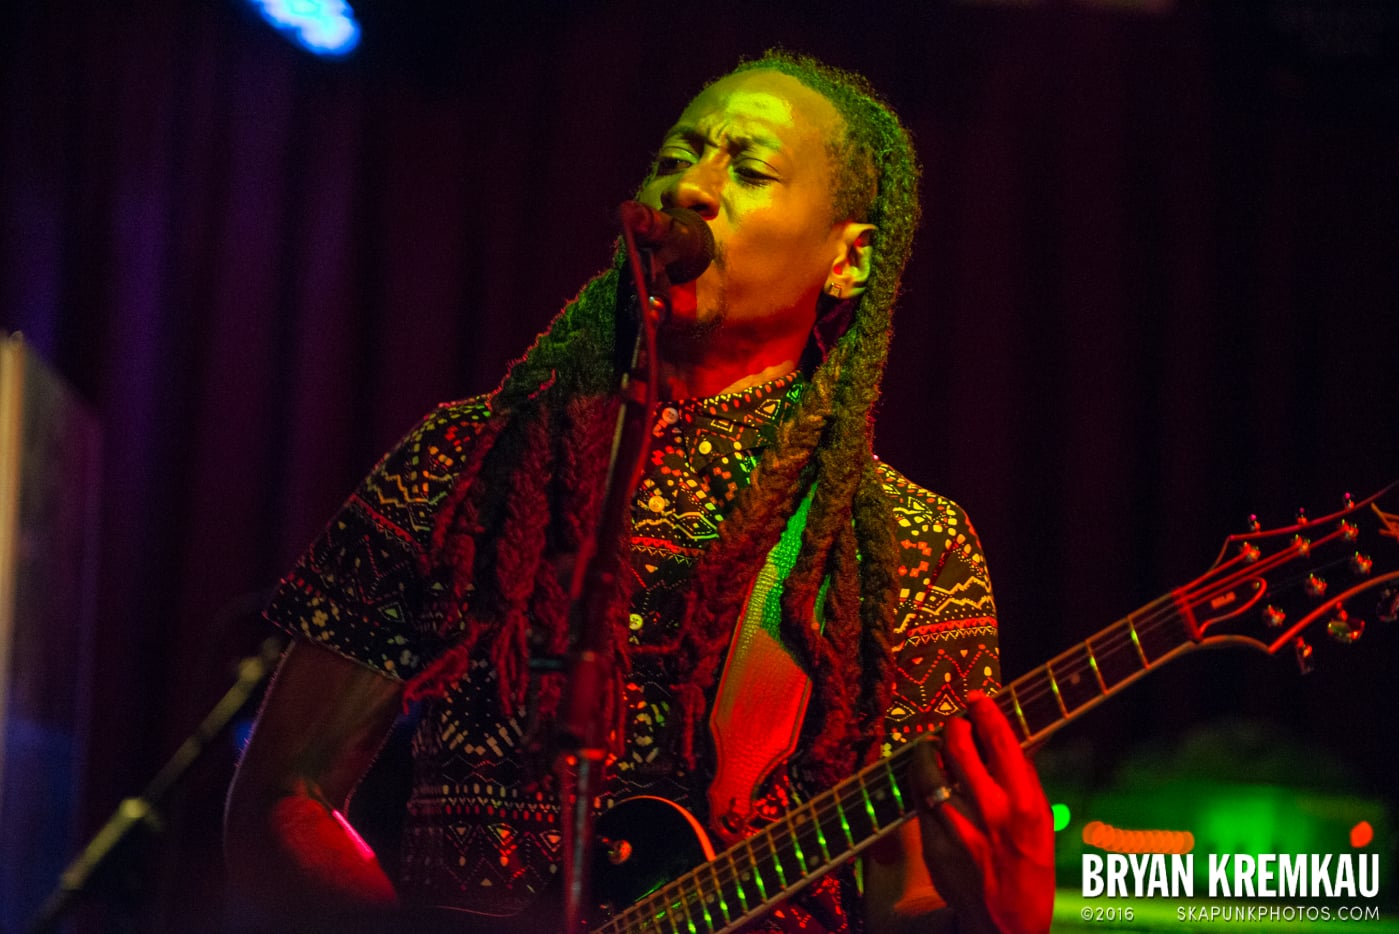 New Kingston @ B.B. King Blues Club, NYC (36)